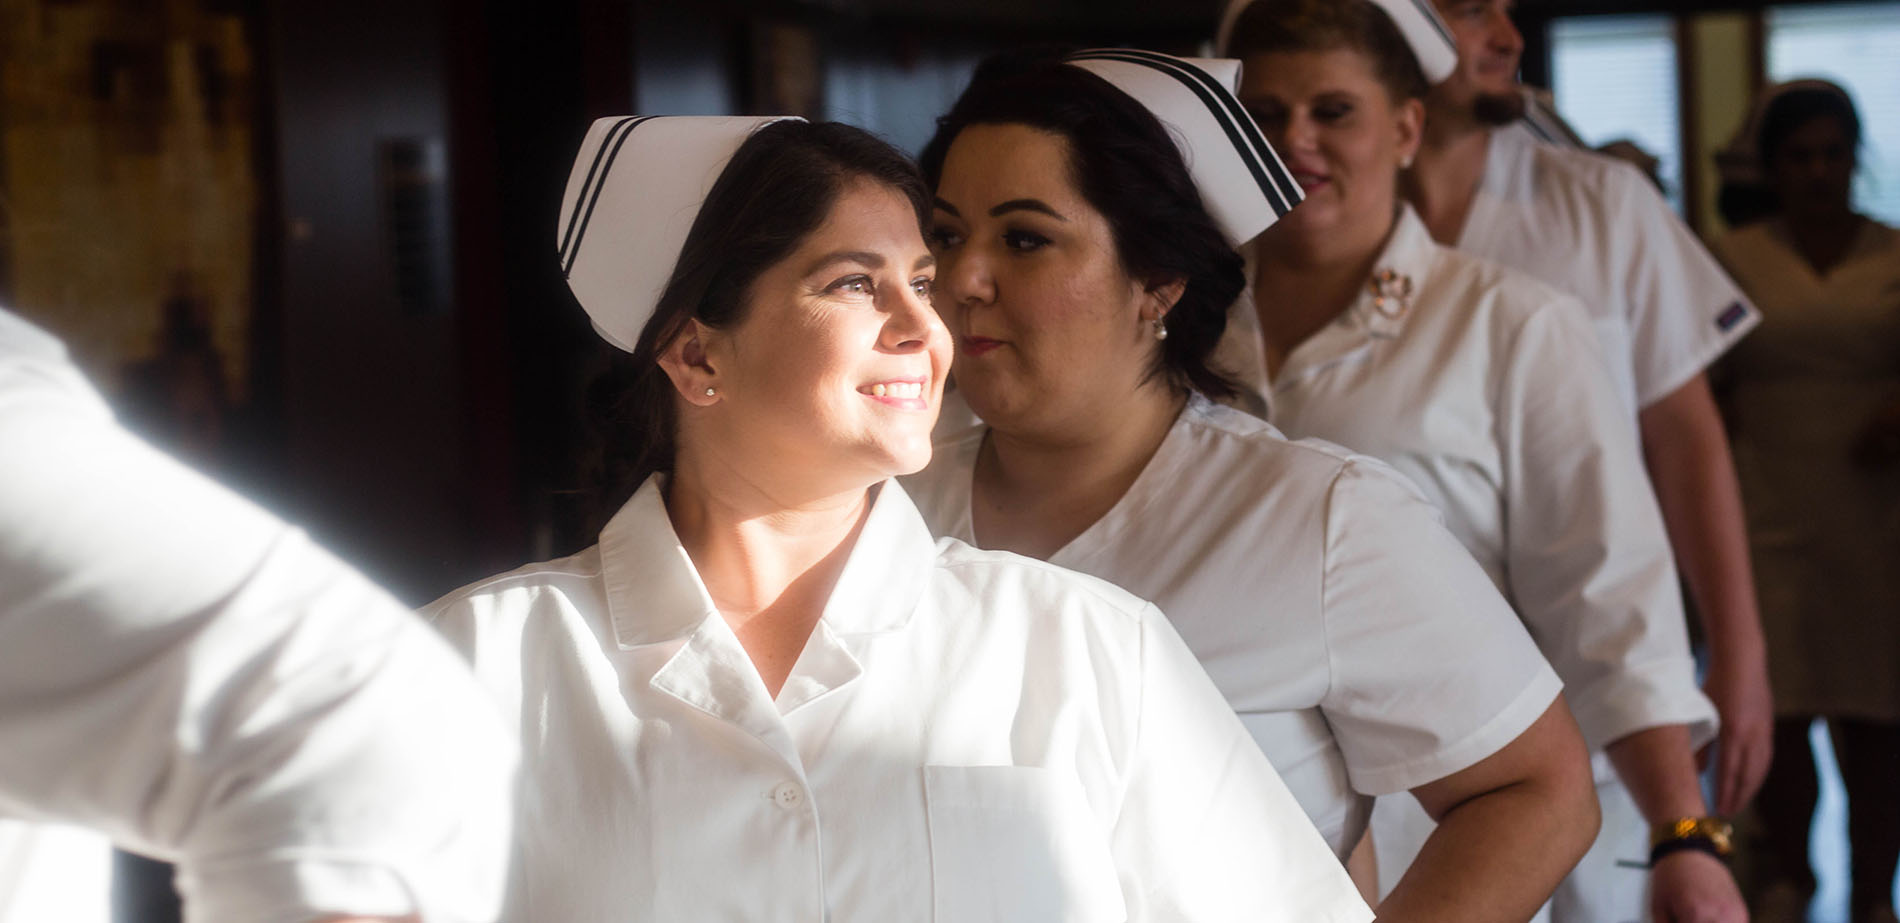 Nursing students in traditional white uniforms